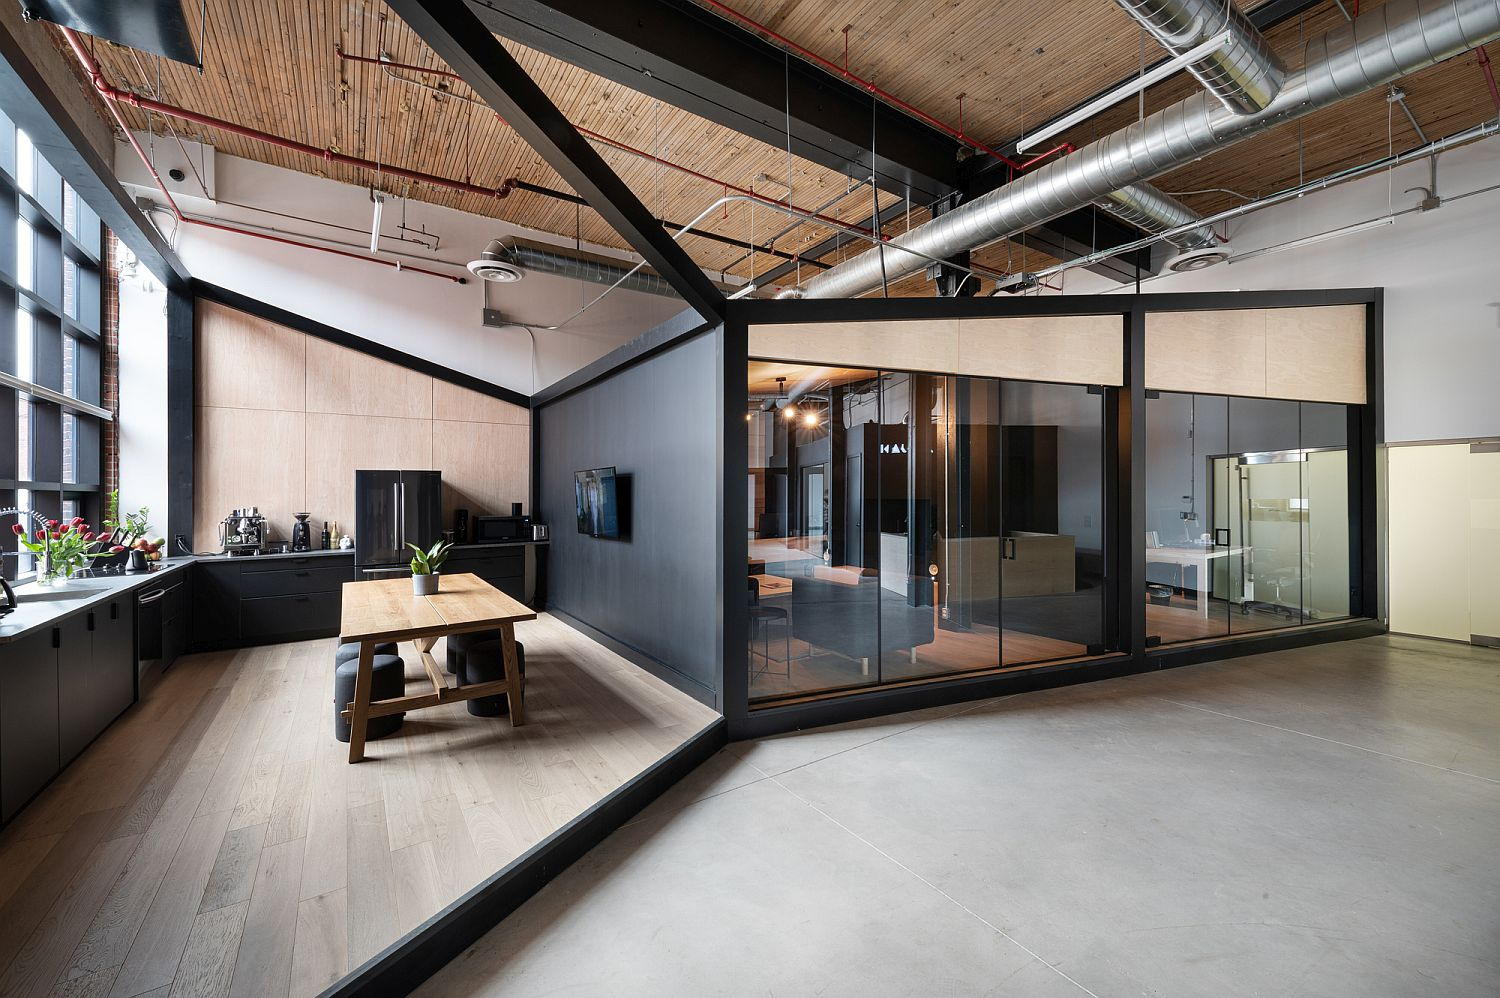 Office of creative visual effects studio in Toronto that feels fresh and innovative